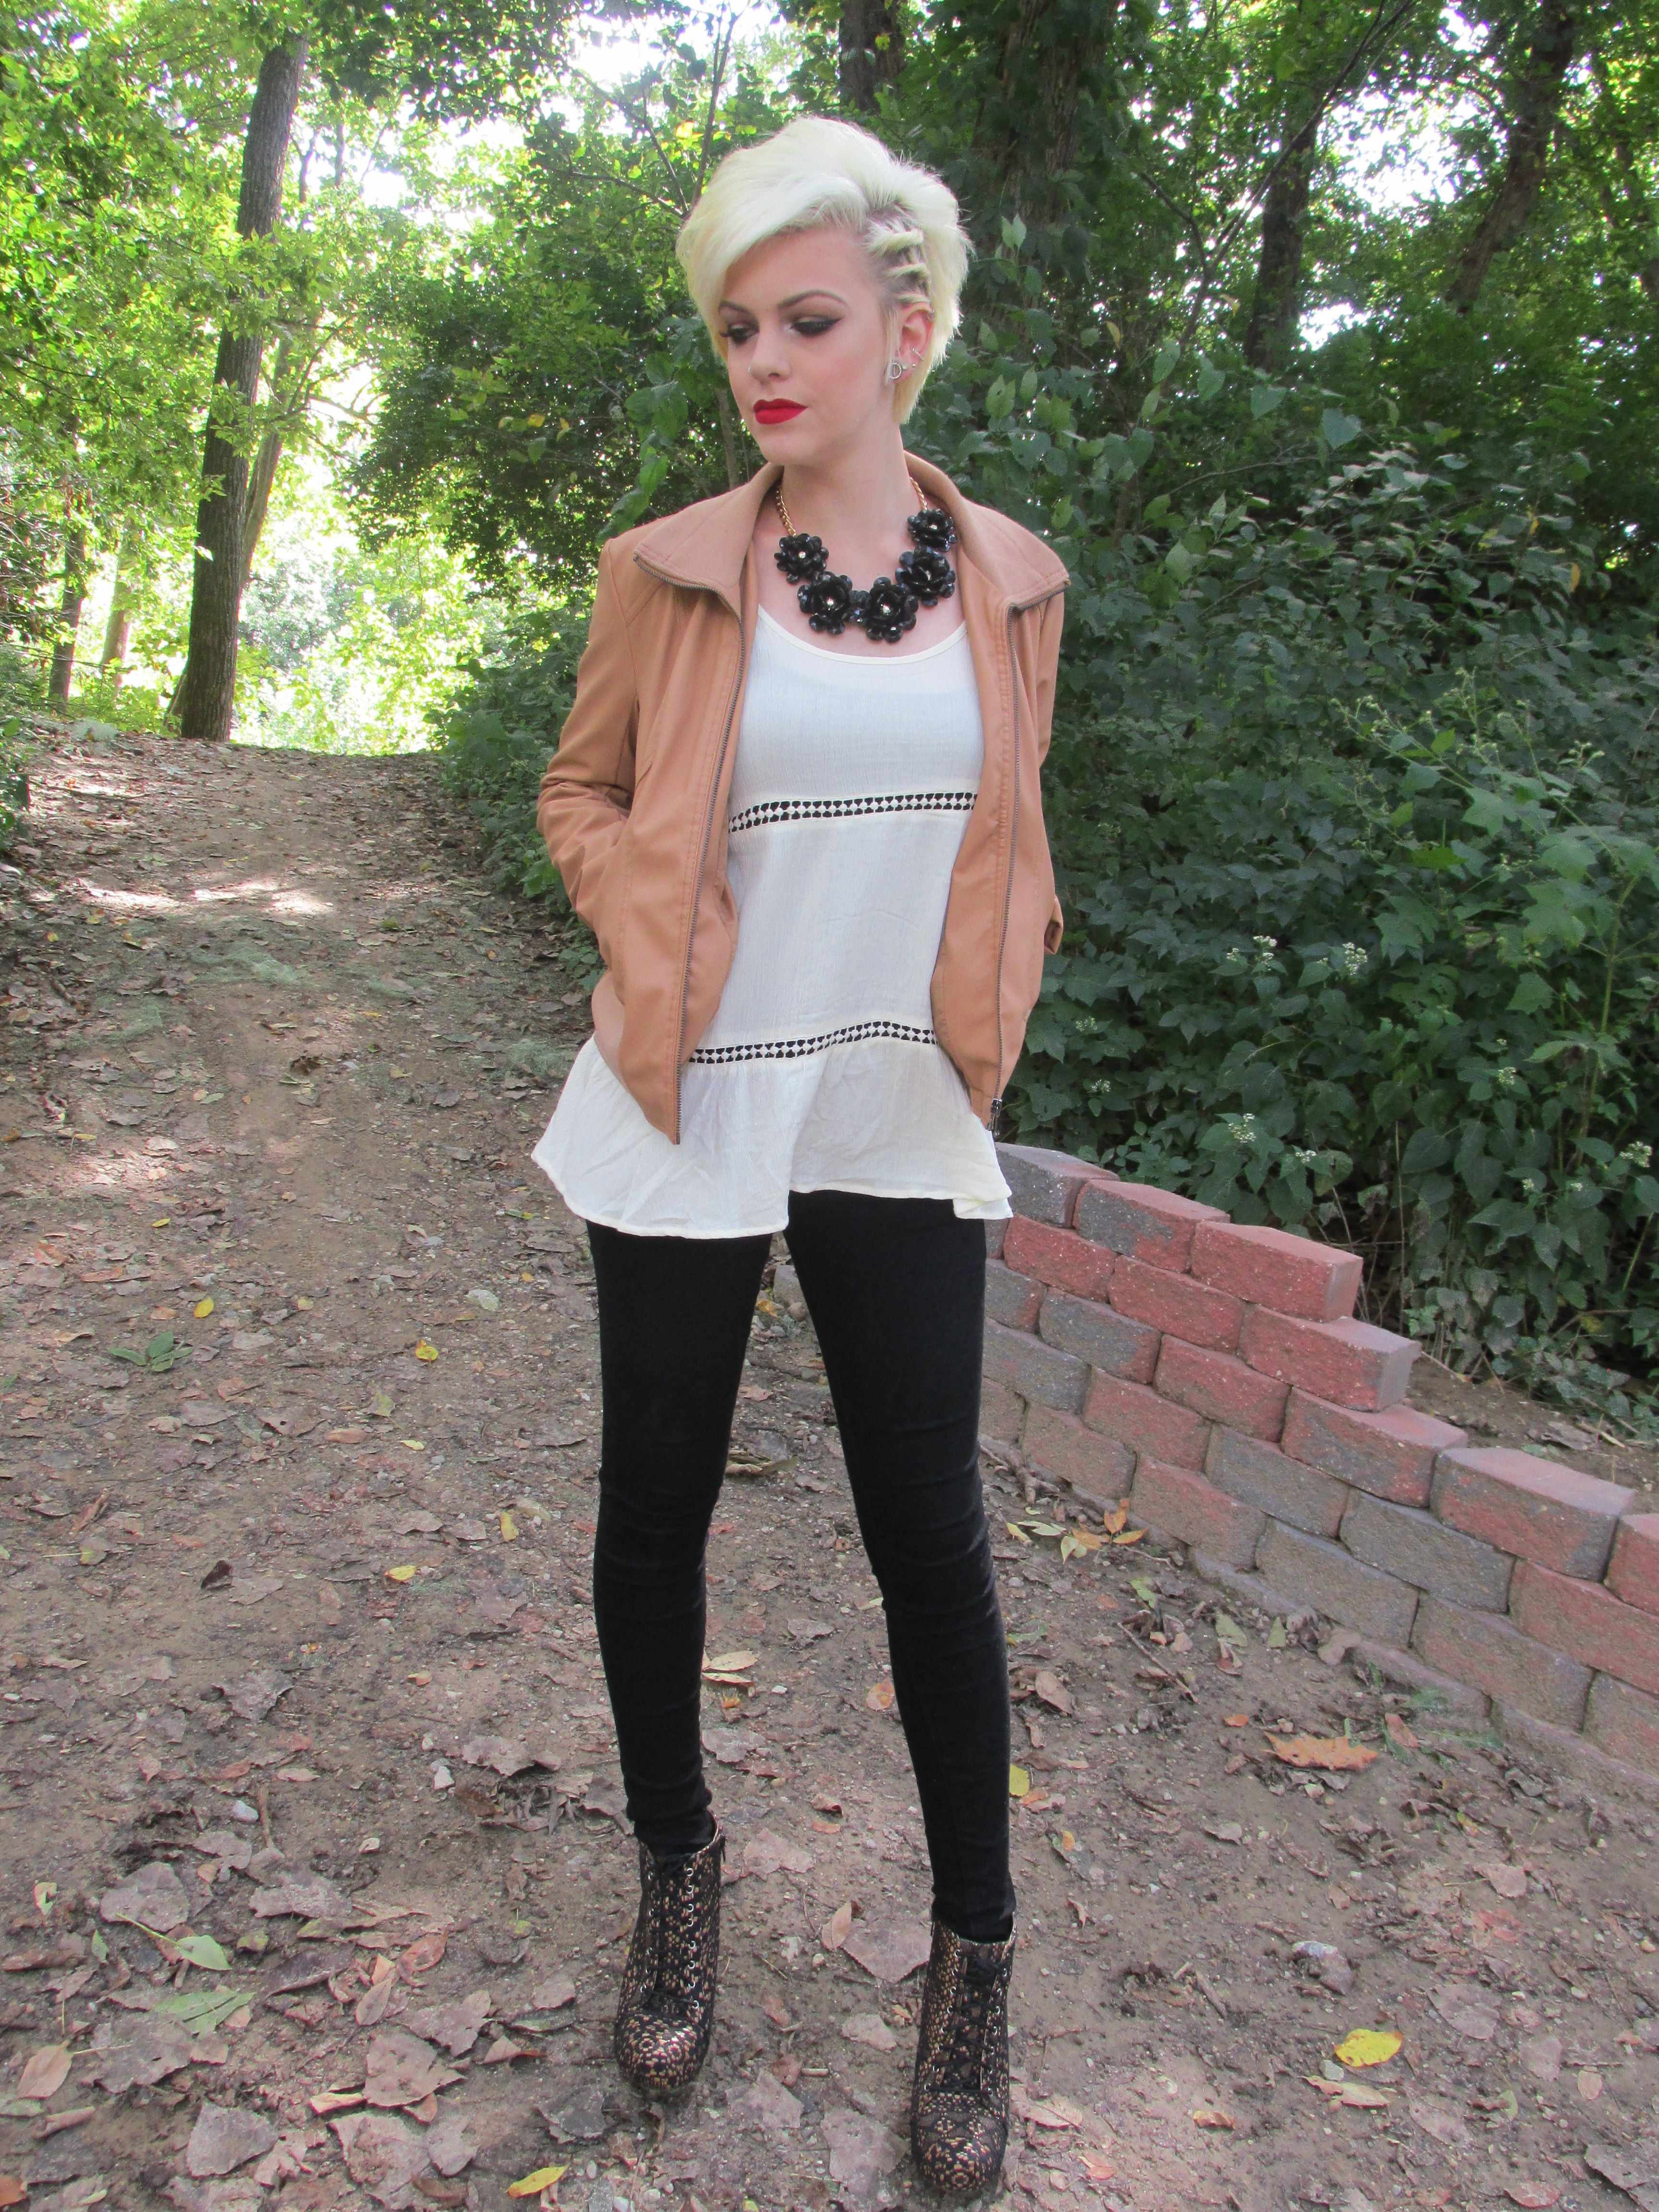 Teen fall fashion baby doll top in white with tan jacket